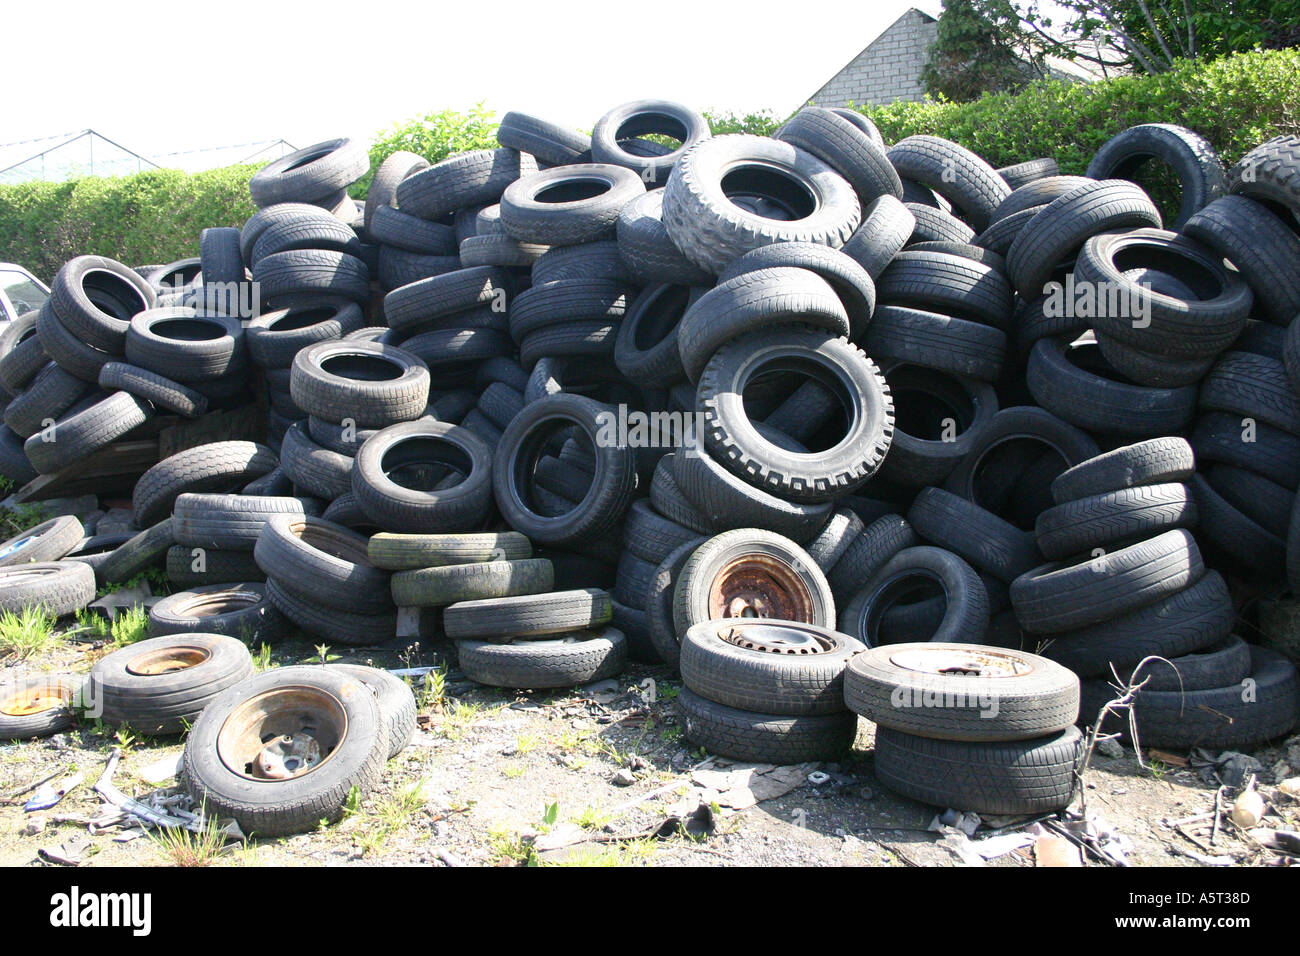 Used tyres - Stock Image